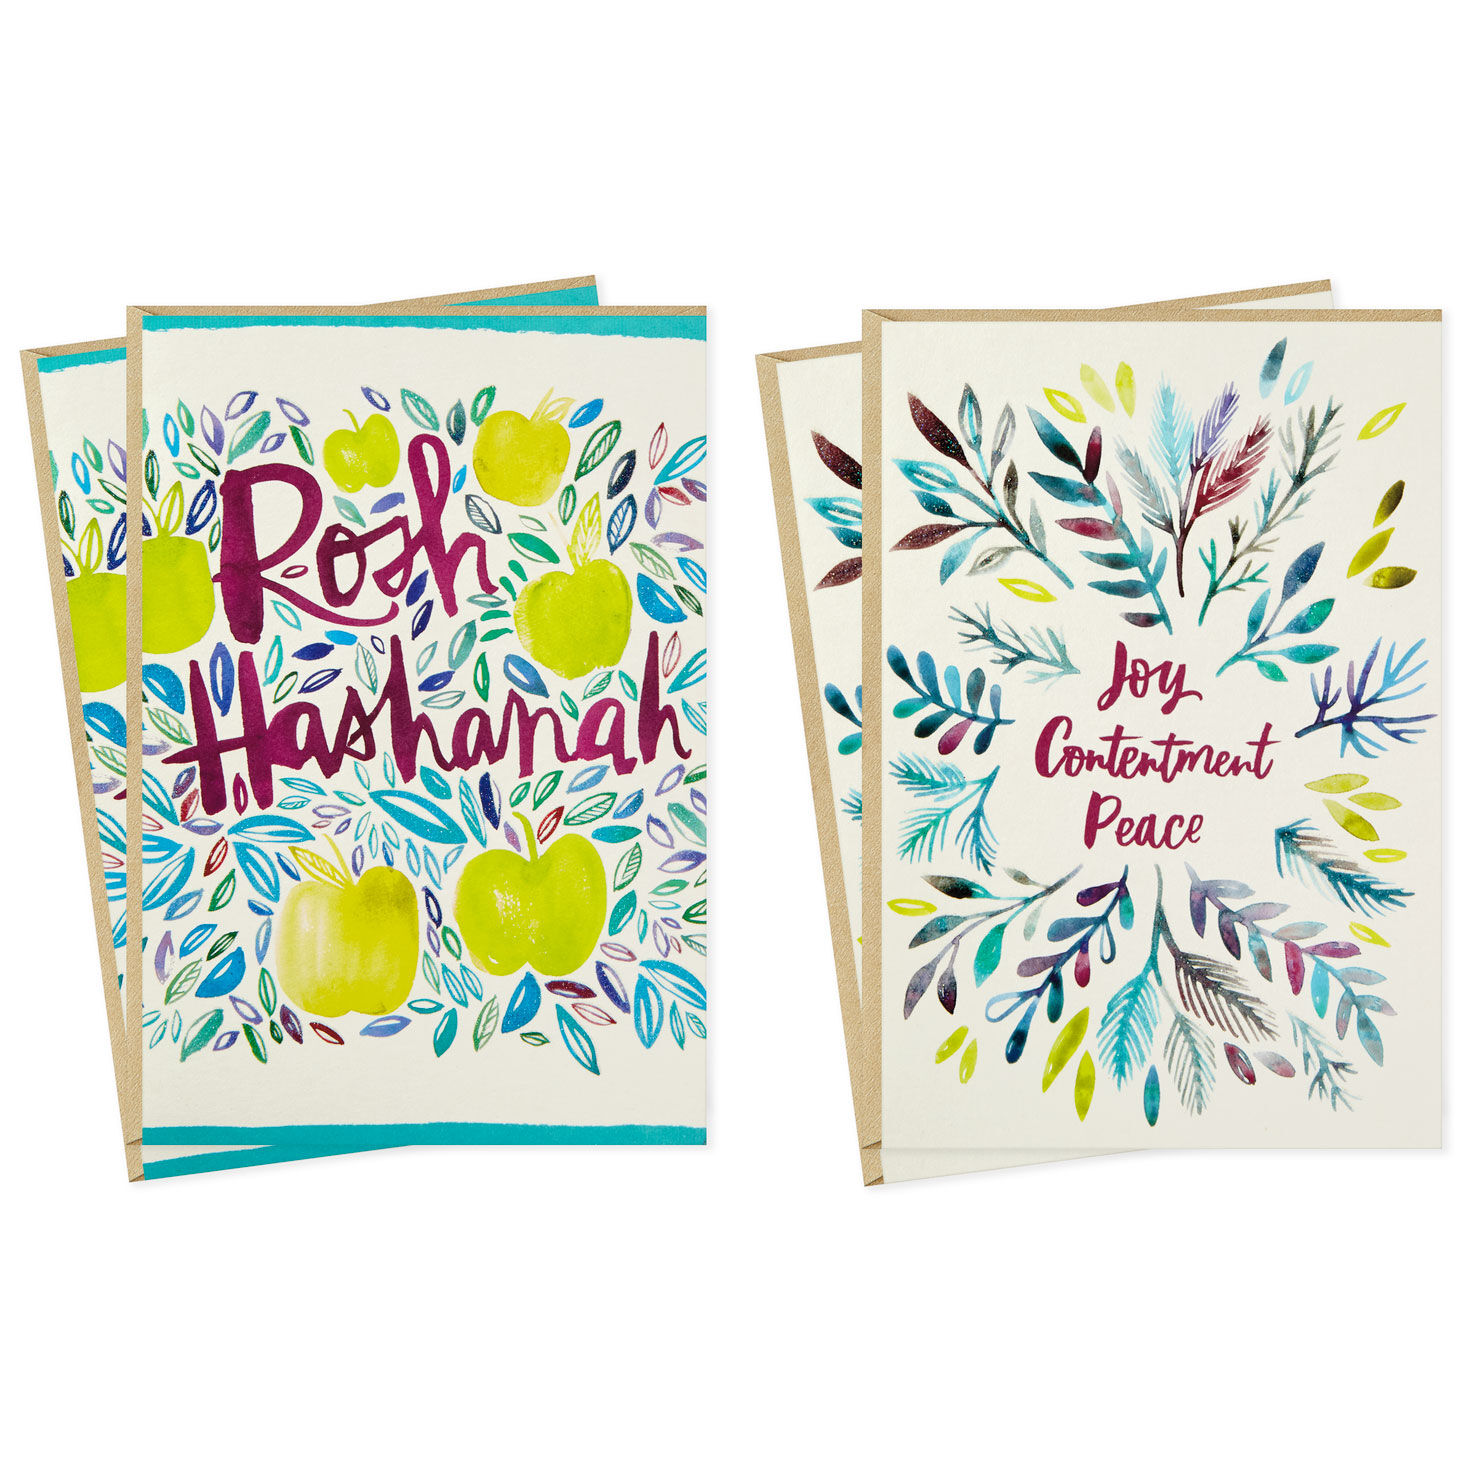 picture relating to Rosh Hashanah Greeting Cards Printable named Apples and Leaves Rosh Hashanah Playing cards, Pack of 6